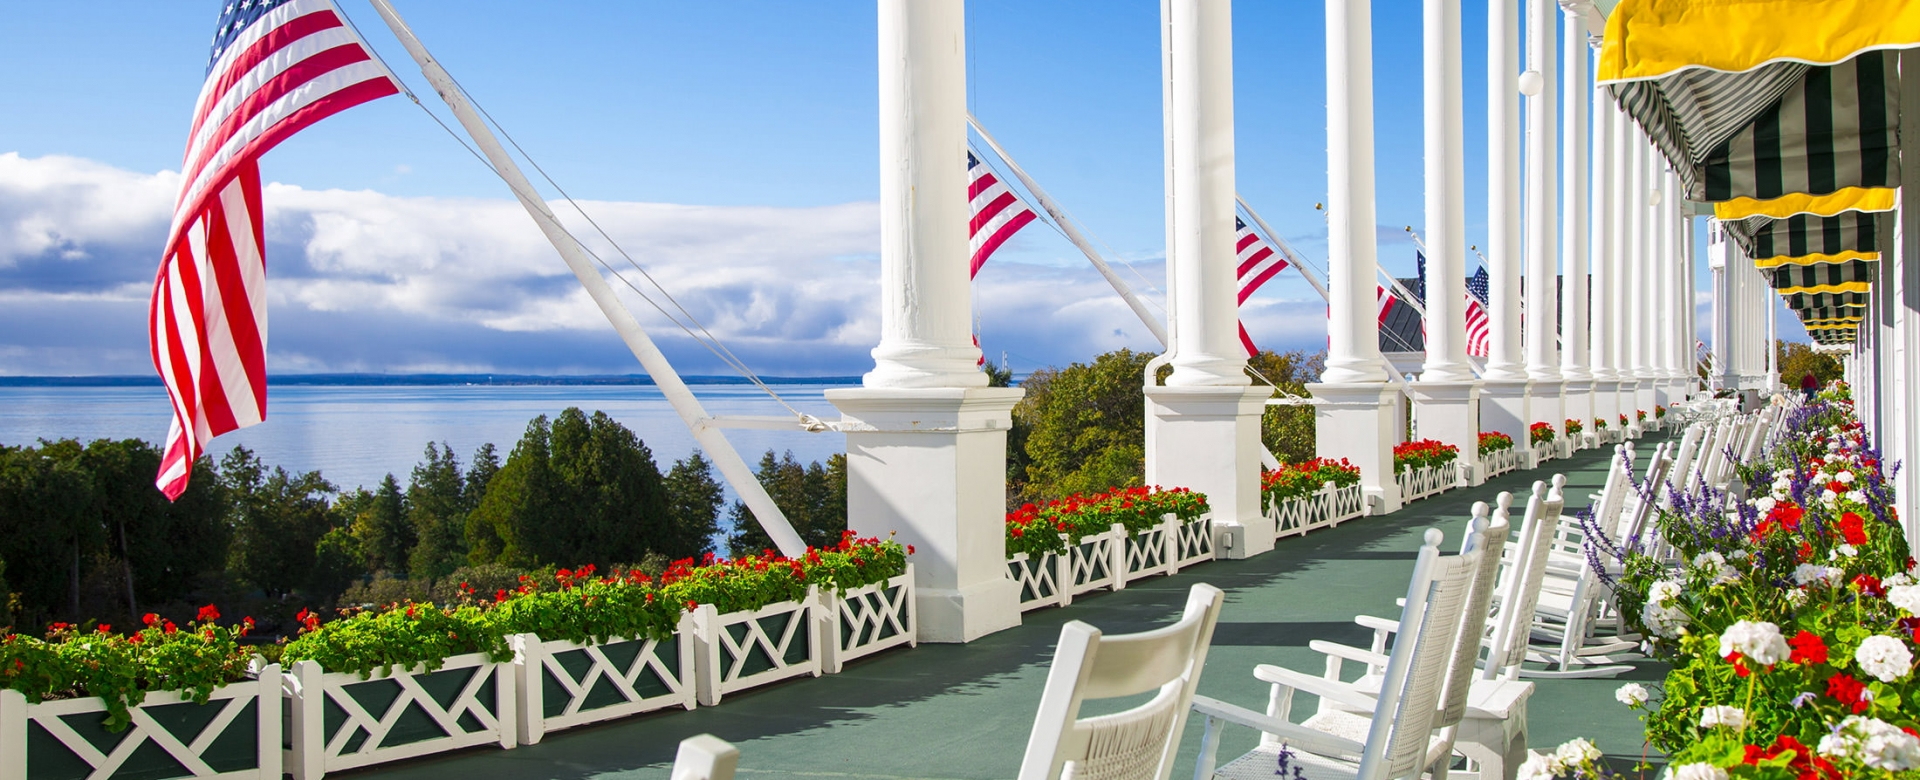 Our Story The Story Of Grand Hotel On Mackinac Island